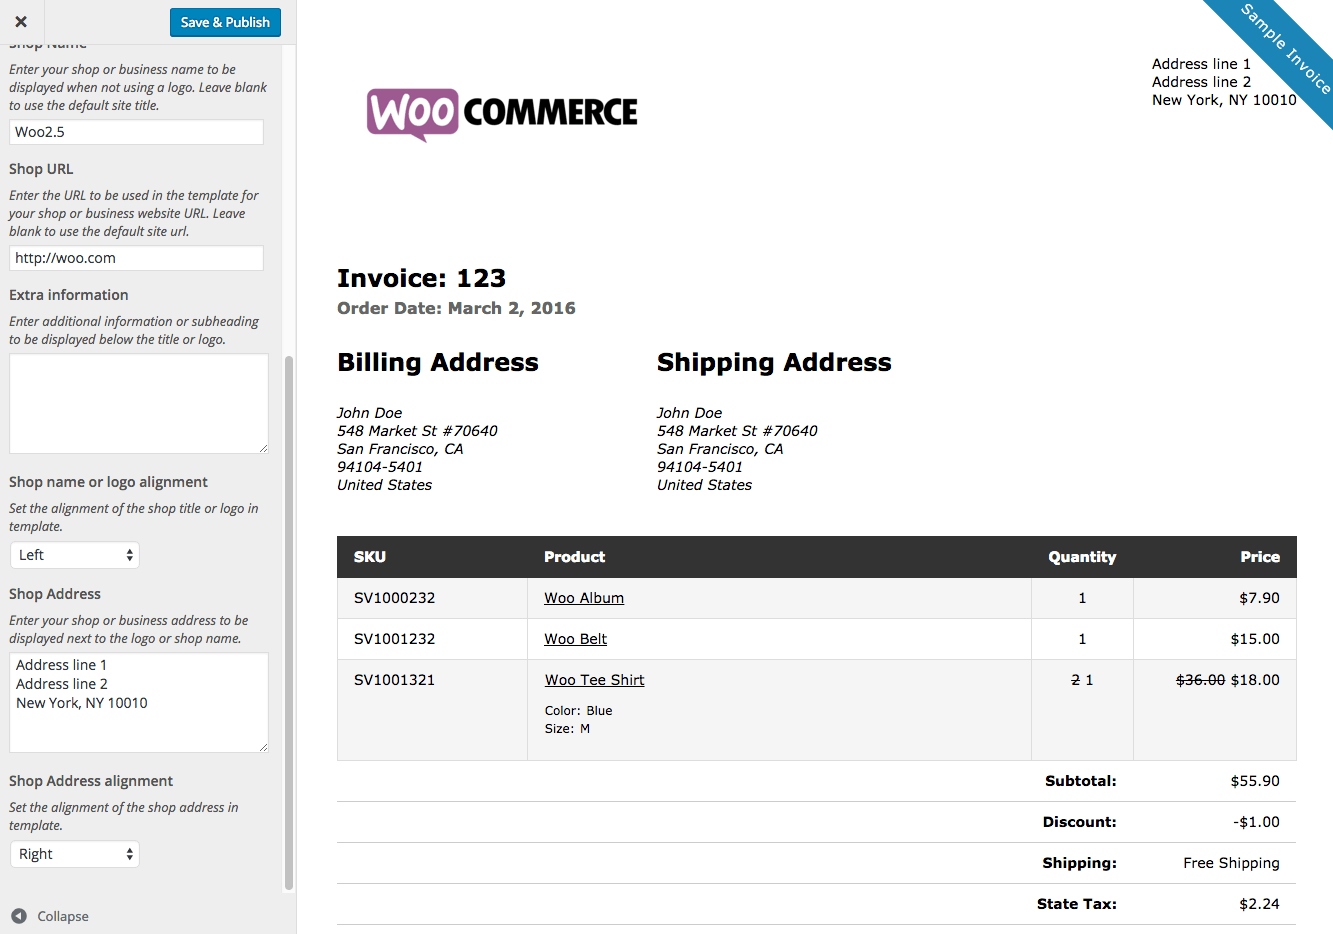 Totallocalus  Prepossessing Woocommerce Print Invoices Amp Packing Lists  Woocommerce Docs With Interesting Woocommerce Print Invoices  Packing Lists Customizer With Divine Commercial Invoice Template Uk Also Po For Invoice In Addition Ford Fusion Dealer Invoice And Cool Invoice Templates As Well As Invoice Issued Additionally Ms Word Template Invoice From Docswoocommercecom With Totallocalus  Interesting Woocommerce Print Invoices Amp Packing Lists  Woocommerce Docs With Divine Woocommerce Print Invoices  Packing Lists Customizer And Prepossessing Commercial Invoice Template Uk Also Po For Invoice In Addition Ford Fusion Dealer Invoice From Docswoocommercecom